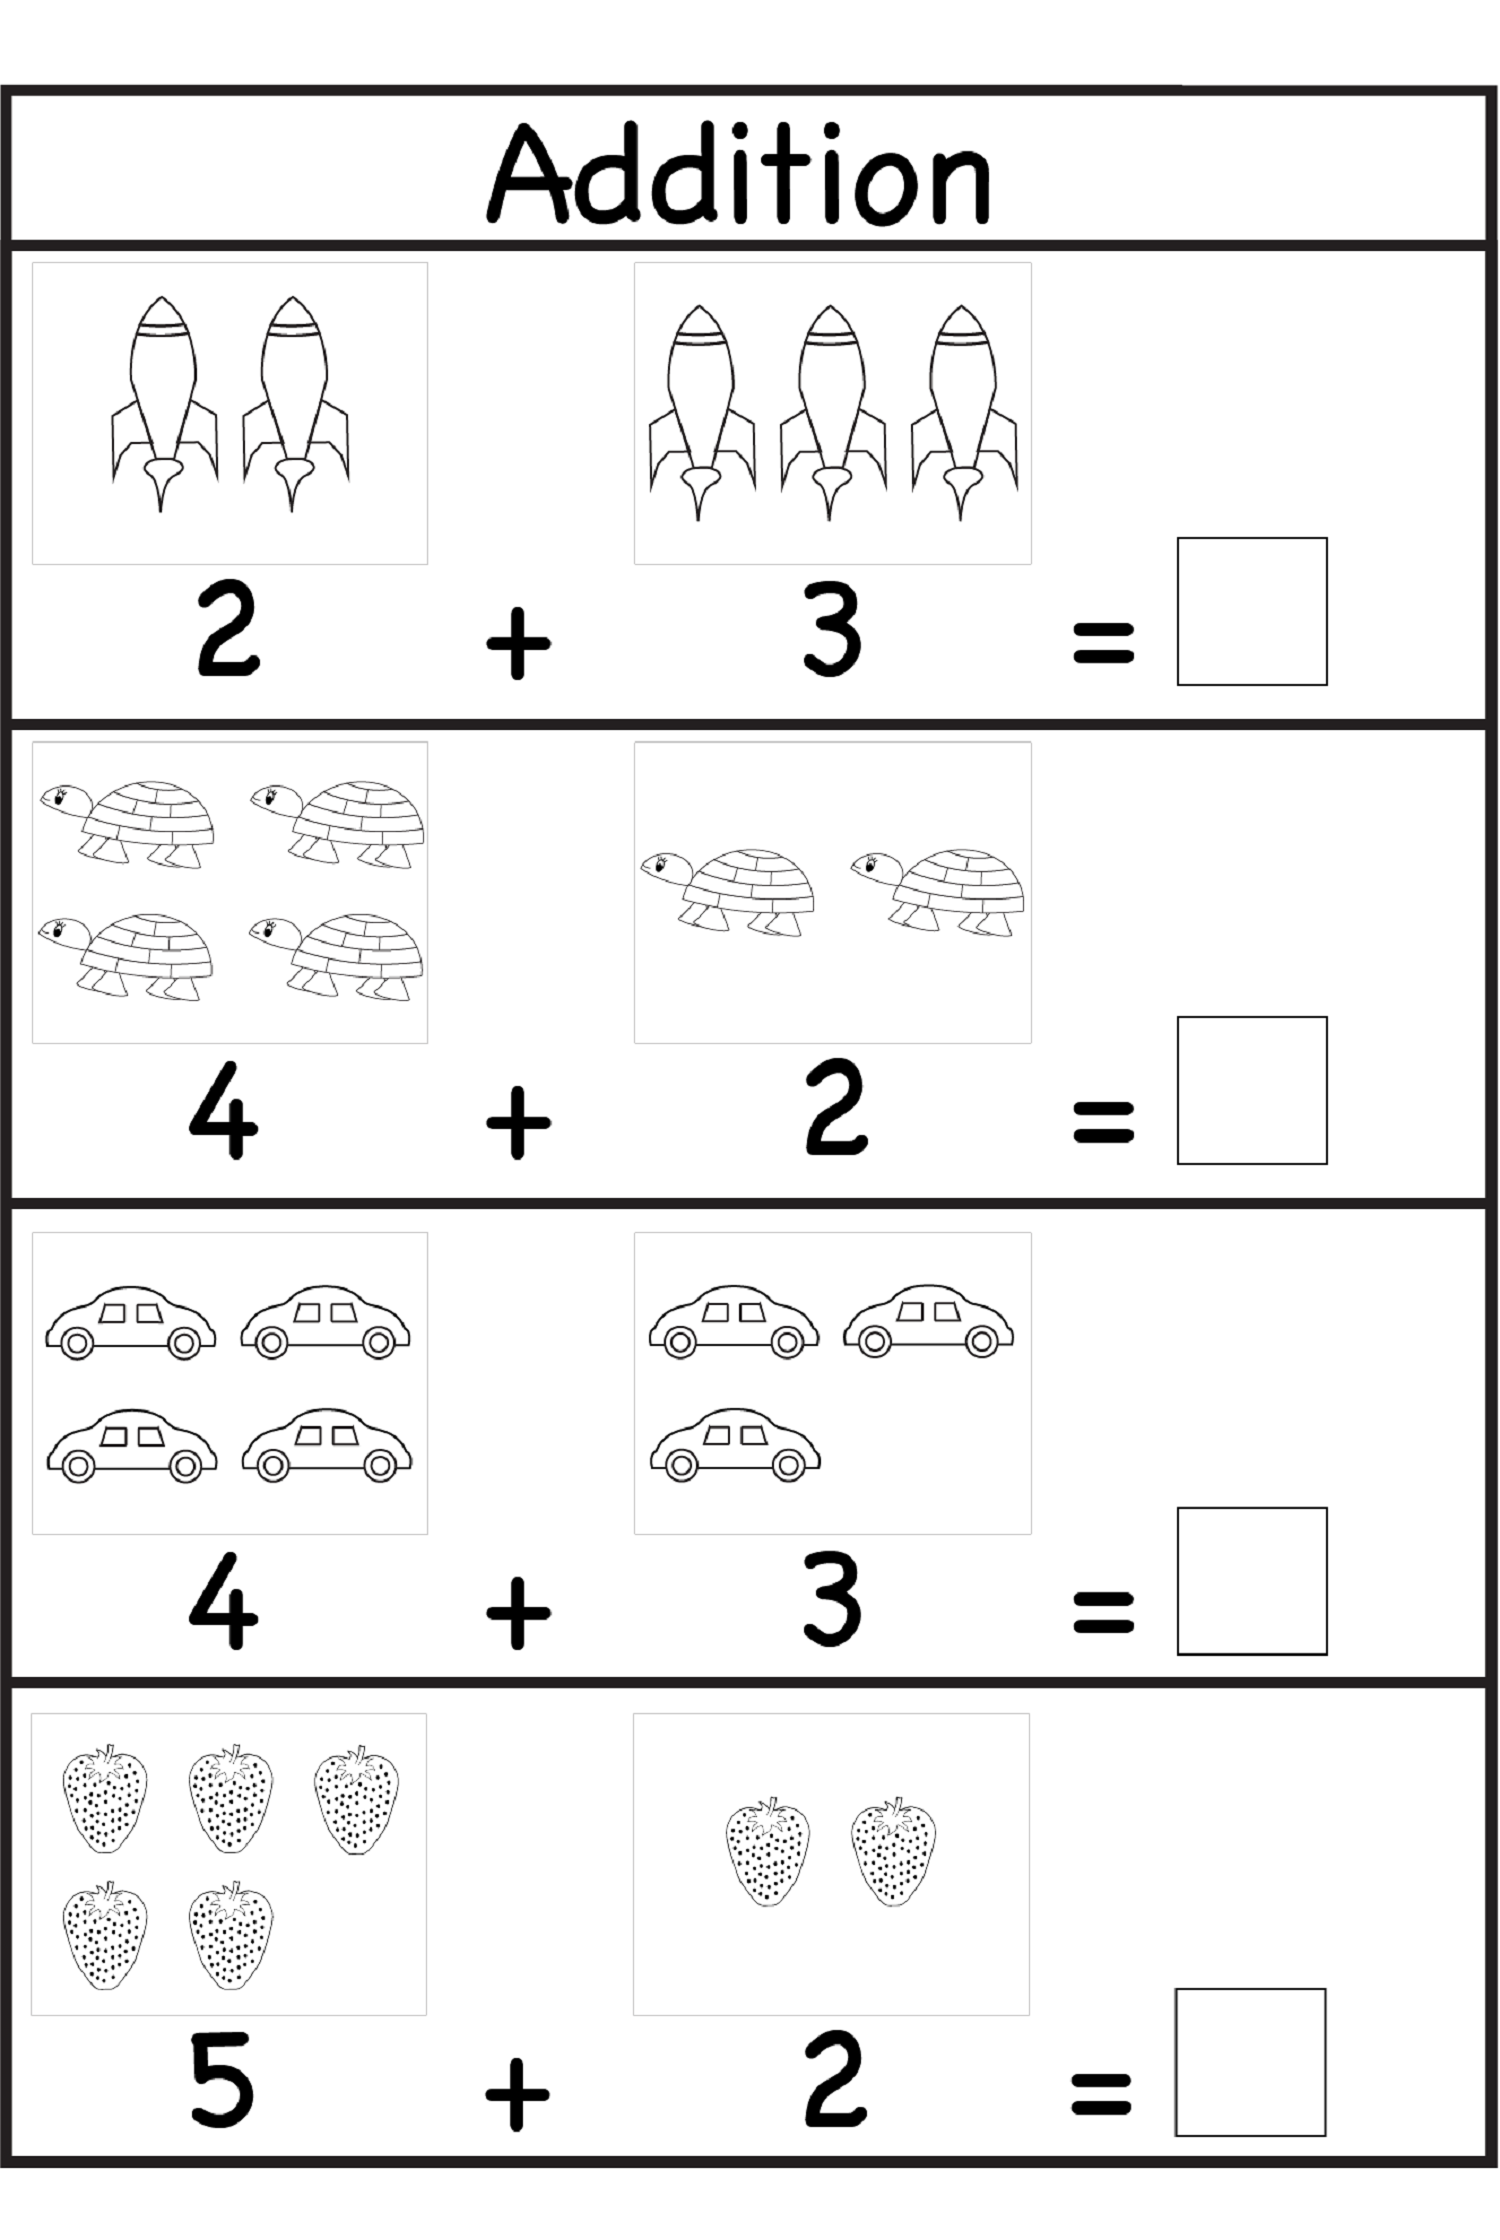 Worksheet Addition Exercises For Grade 1 addition for worksheets grade 1 is helpful educative media dear joya kids activity math pinterest 1